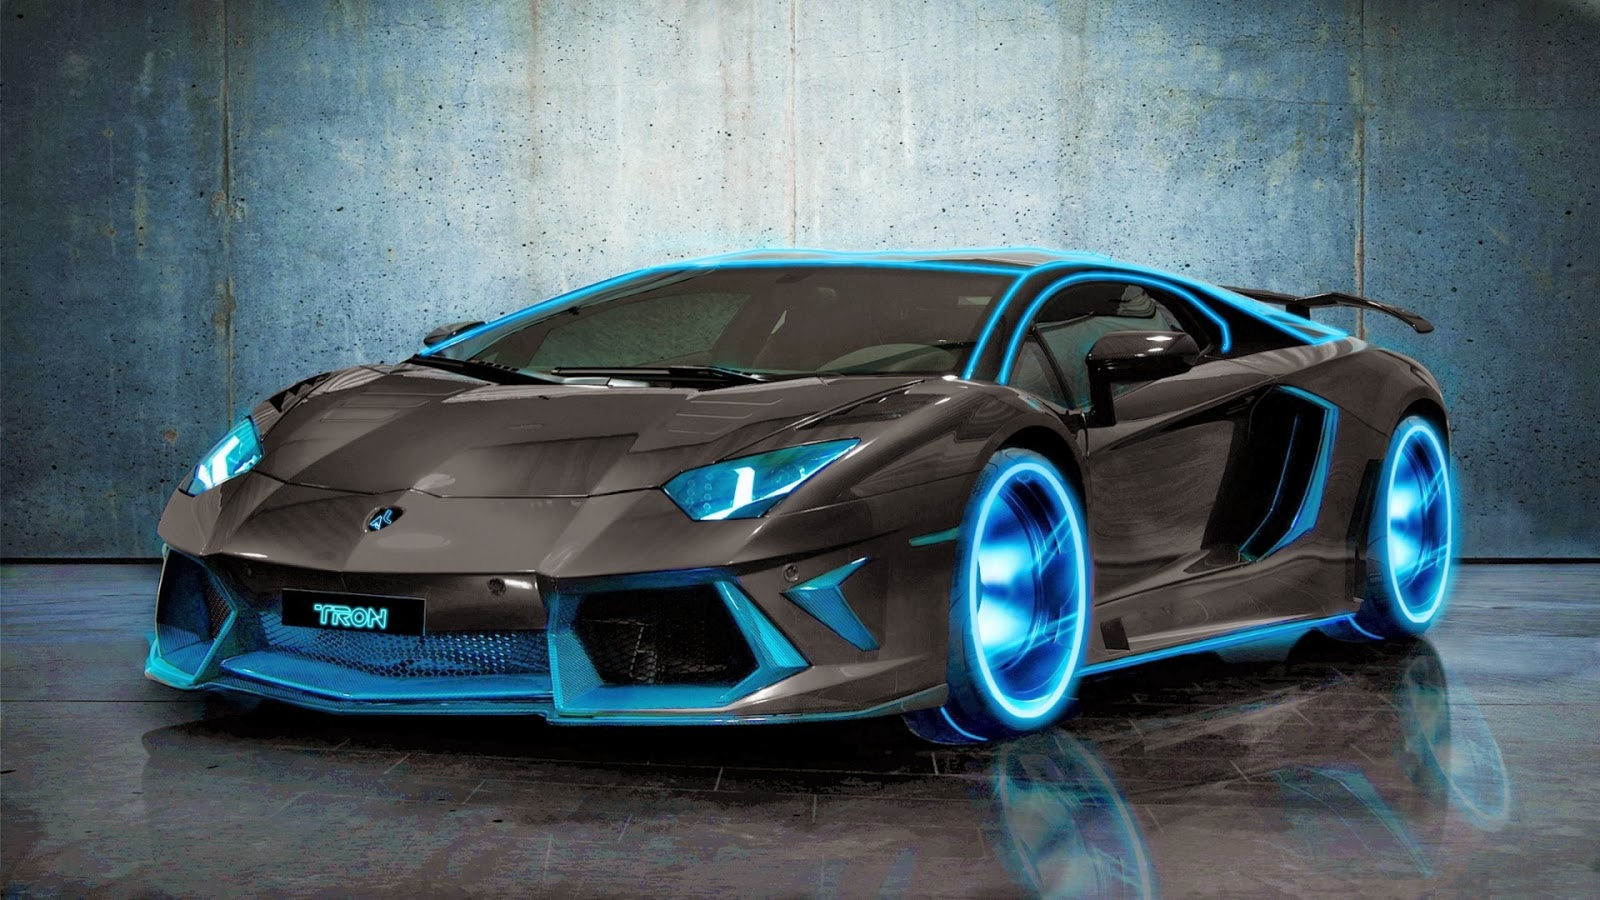 Hd Wallpaper Download Tron Lamborghini Aventador 2014 Hd Wallpaper Download